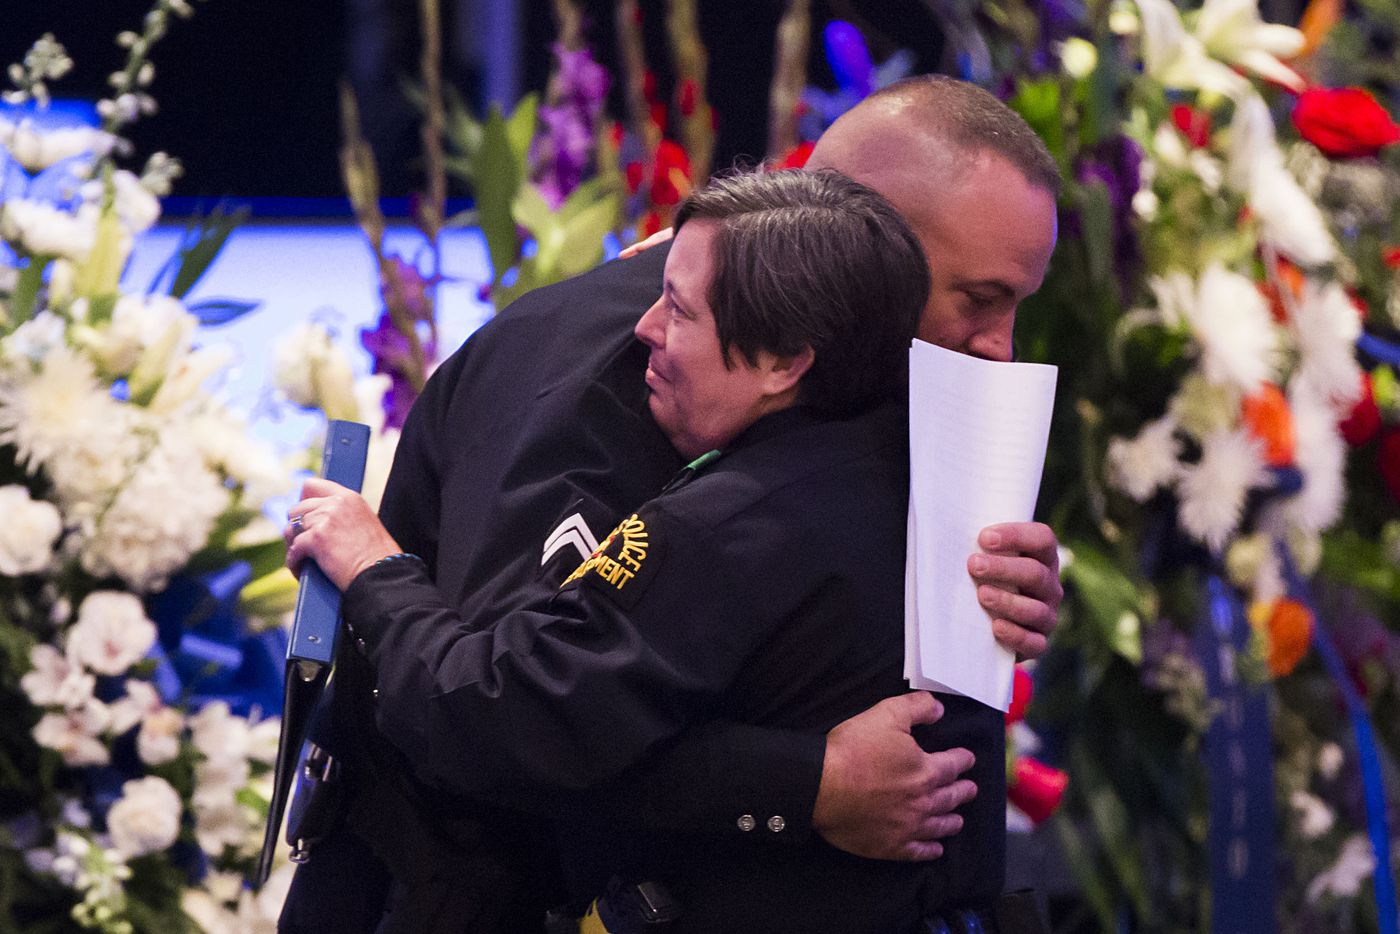 Dallas police officer Eddie Coffey hugs fellow officer Debbie Taylor during funeral services for Dallas police Sr. Cpl. Lorne Ahrens at Prestonwood Baptist Churchon Wednesday, July 13, 2016, in Plano.